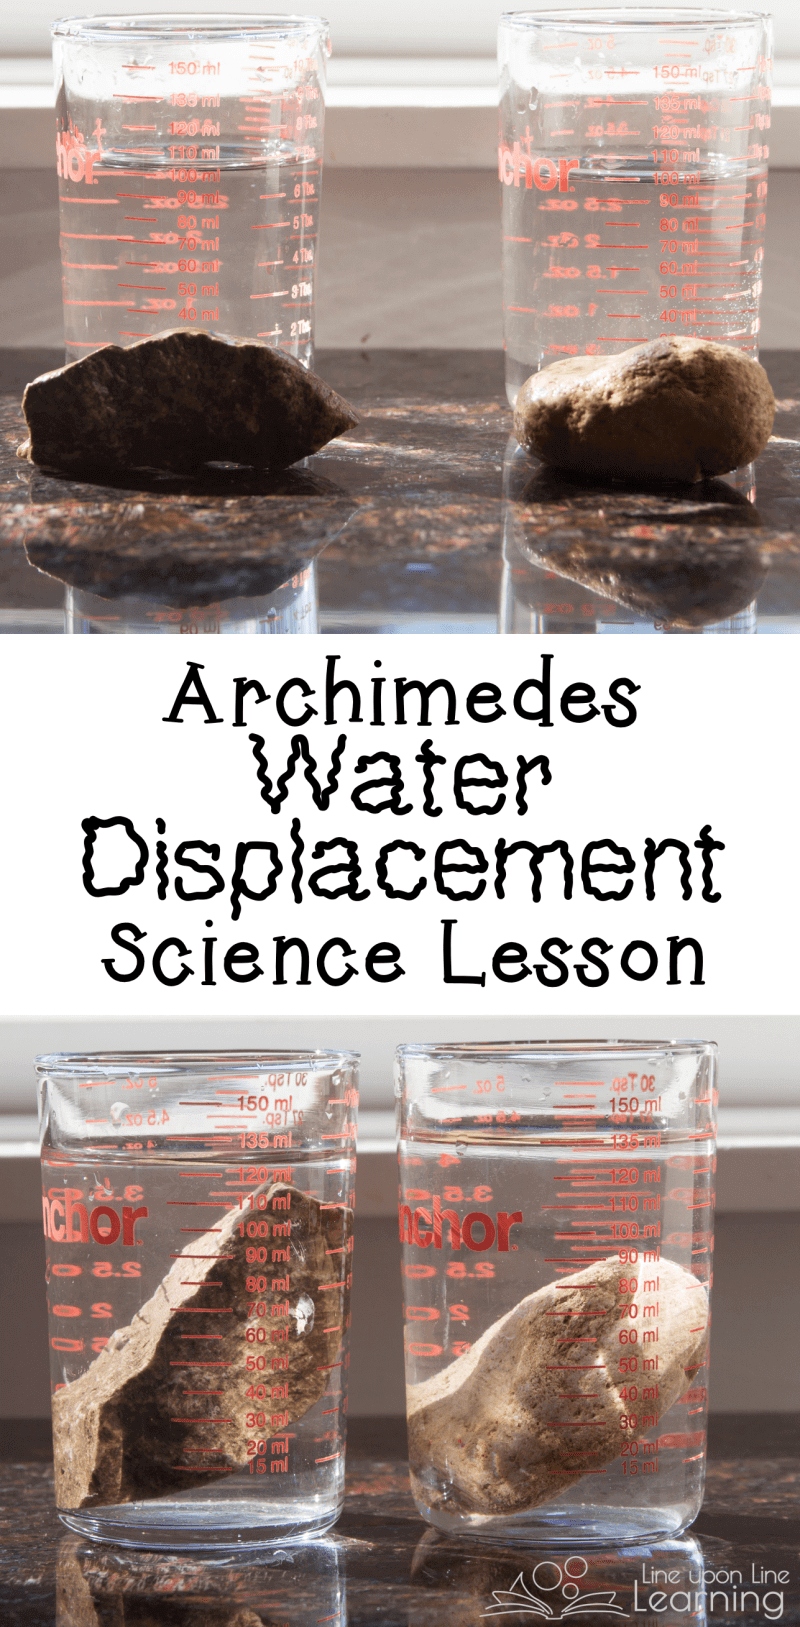 201703-archimedes-water-displacement-science-lesson-1 Table Of Information Example on scientific visualization, mapping heading, technology sop, information visualization, information graphics, mapping step action, processing theory, knowledge areas, mapping process, statistical graphics, personal health, visual analytics, software visualization,